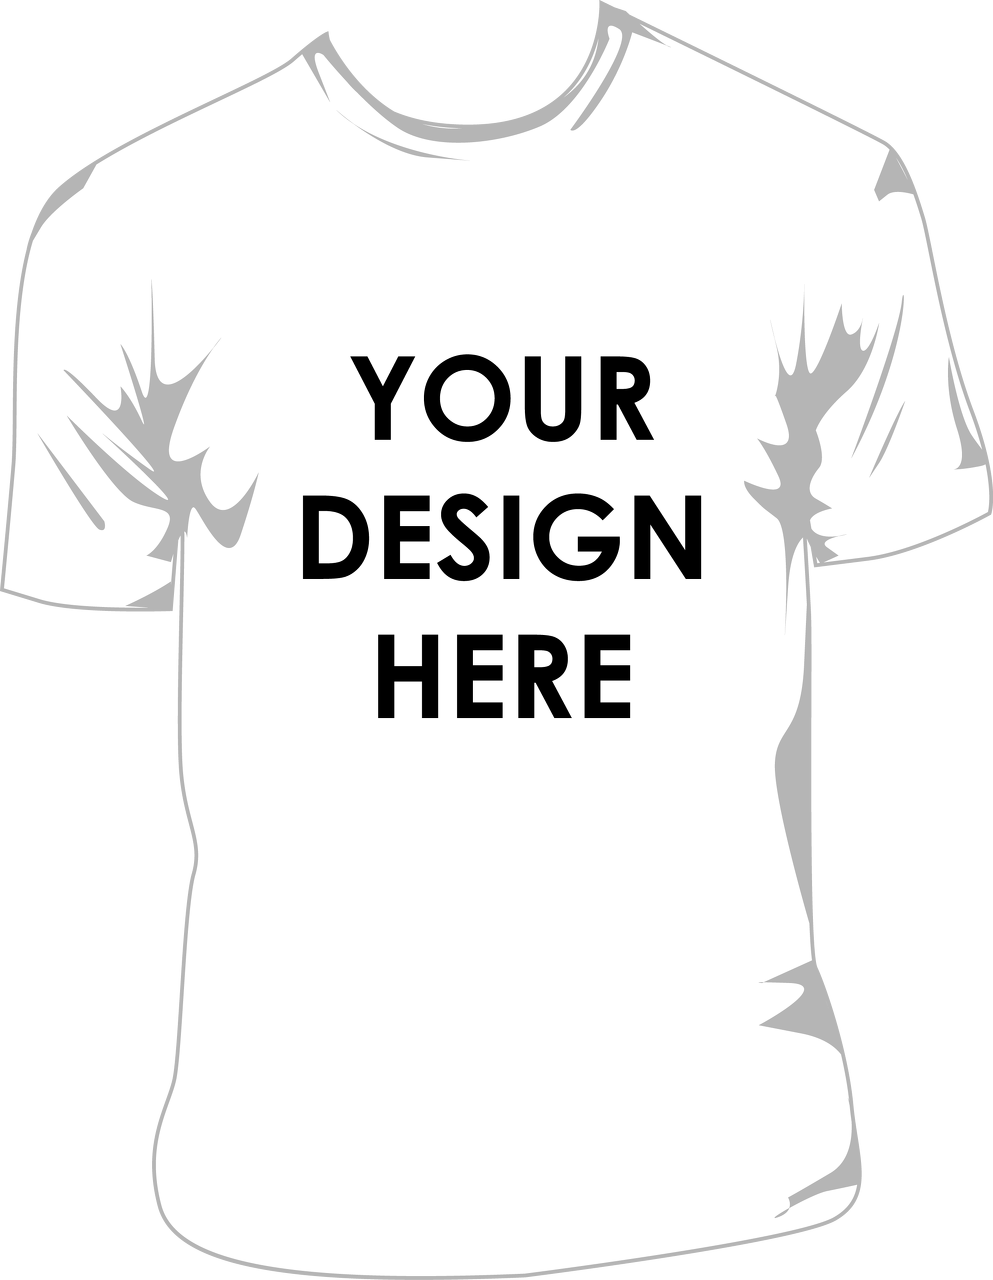 Design t shirt png - Your Name Here Png